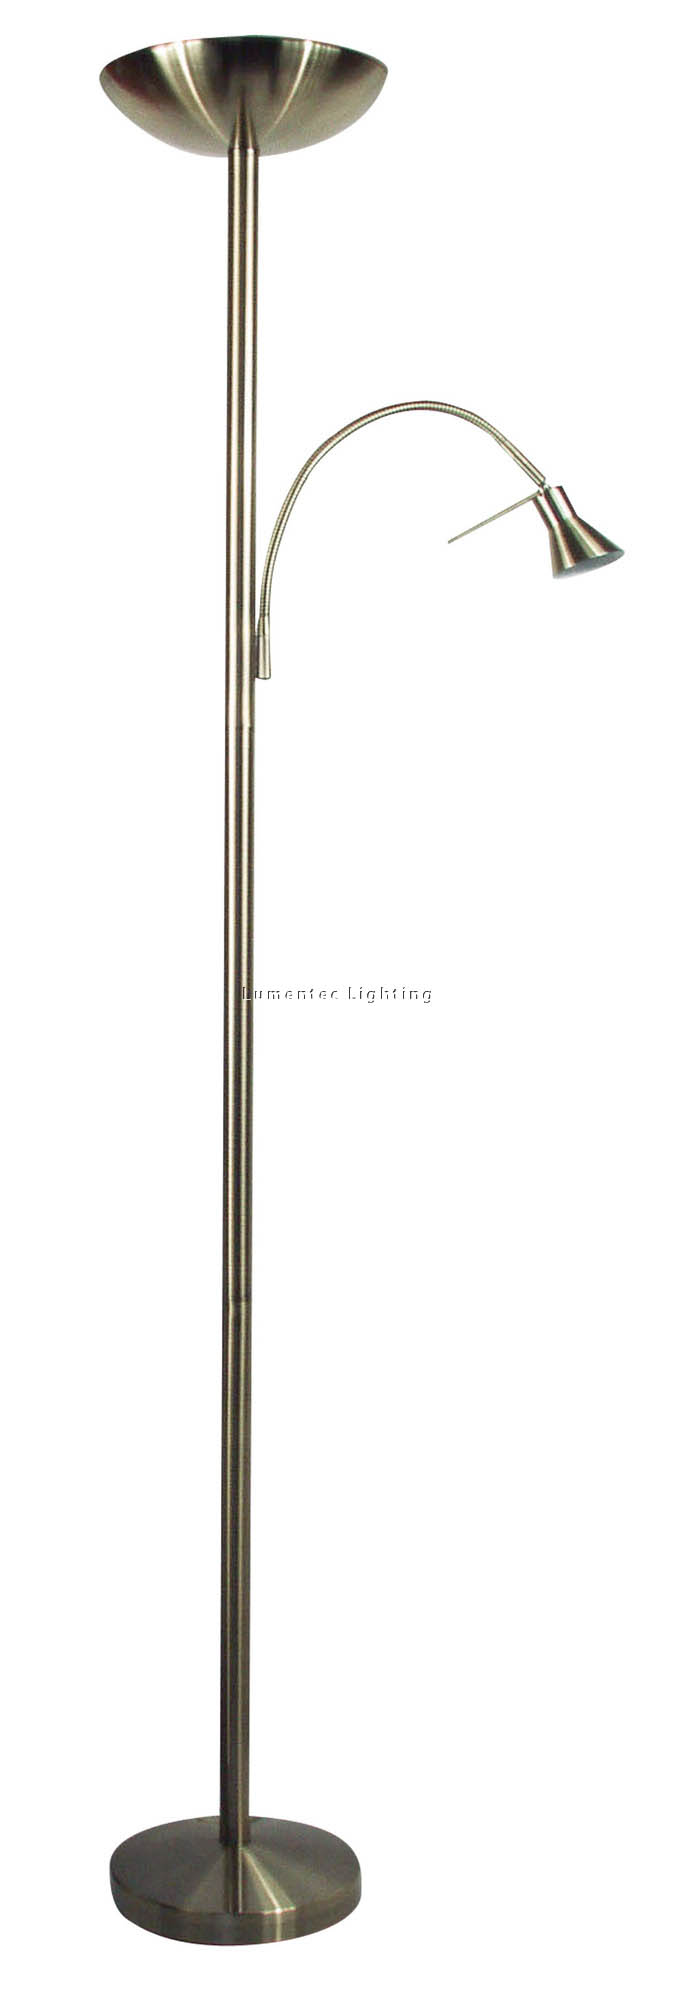 ORL0580 Rialto Floor Lamp in Antique Brass Oriel